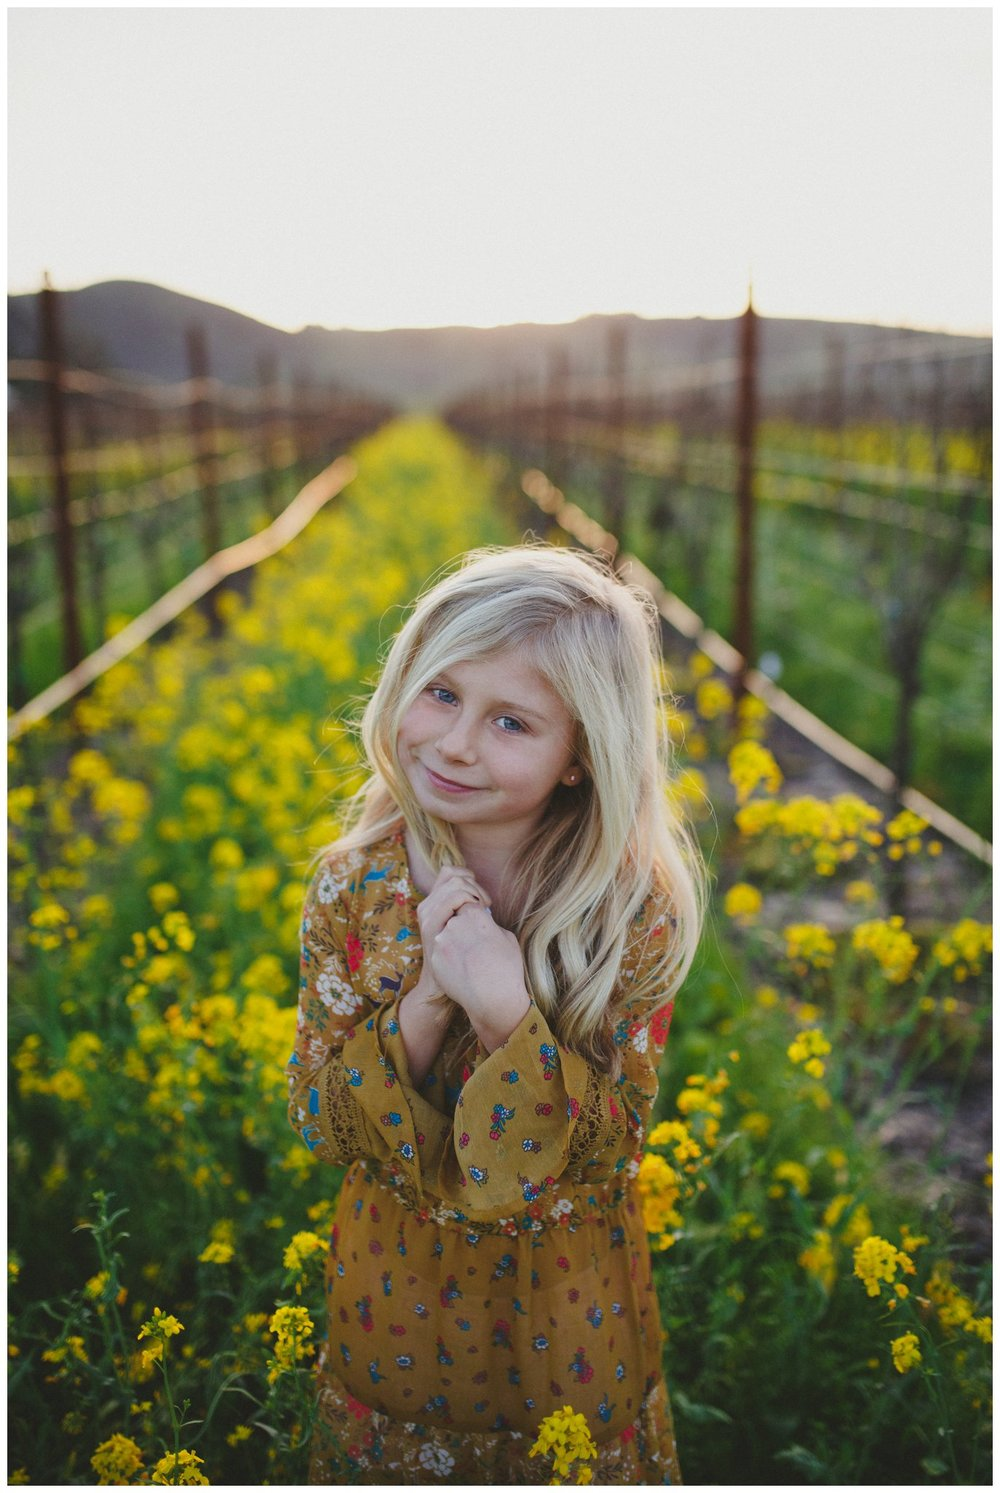 Mustard Seed {Sonoma County Photographer}